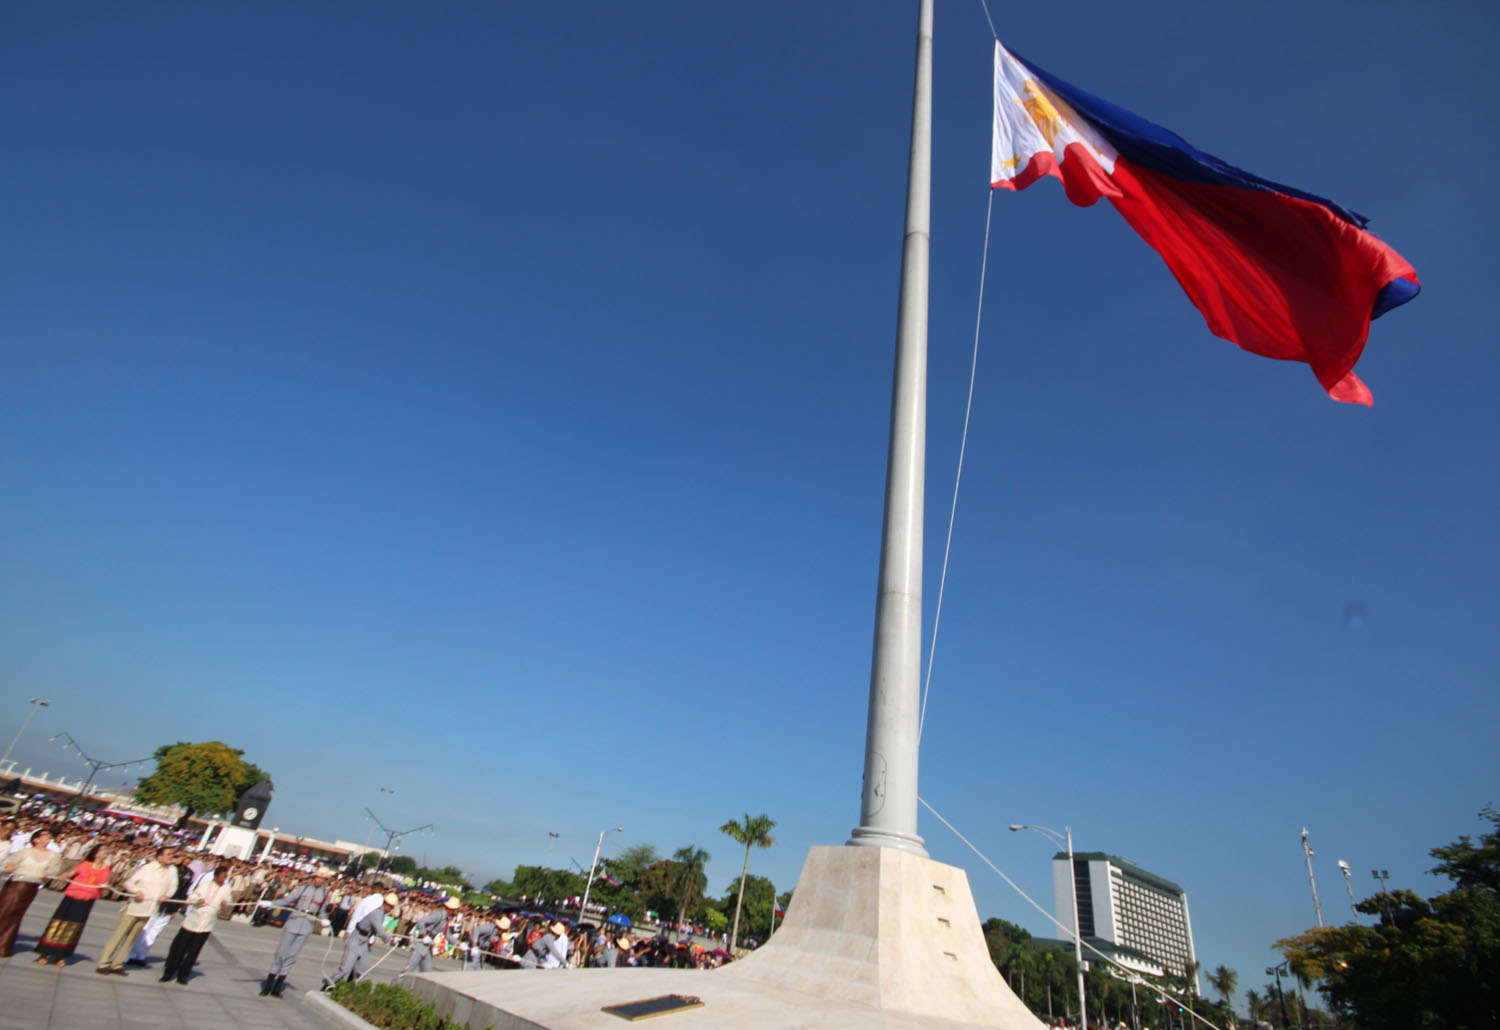 Philippine independence day pictures 118th Philippine Independence Day Photos and Images Getty